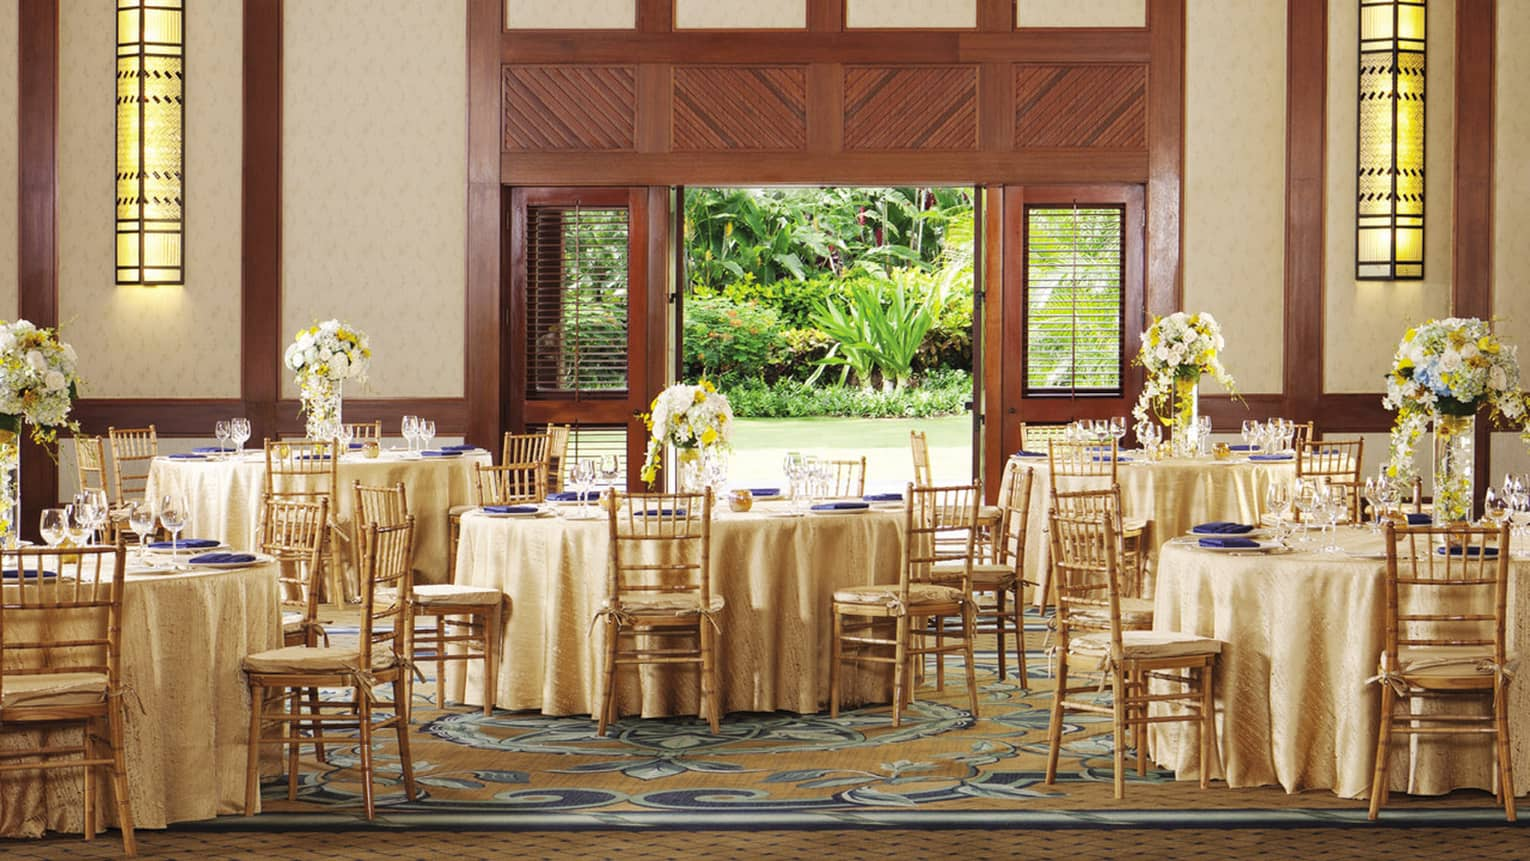 Hualalai ballroom with round banquet dining tables under high ceilings, open door to garden